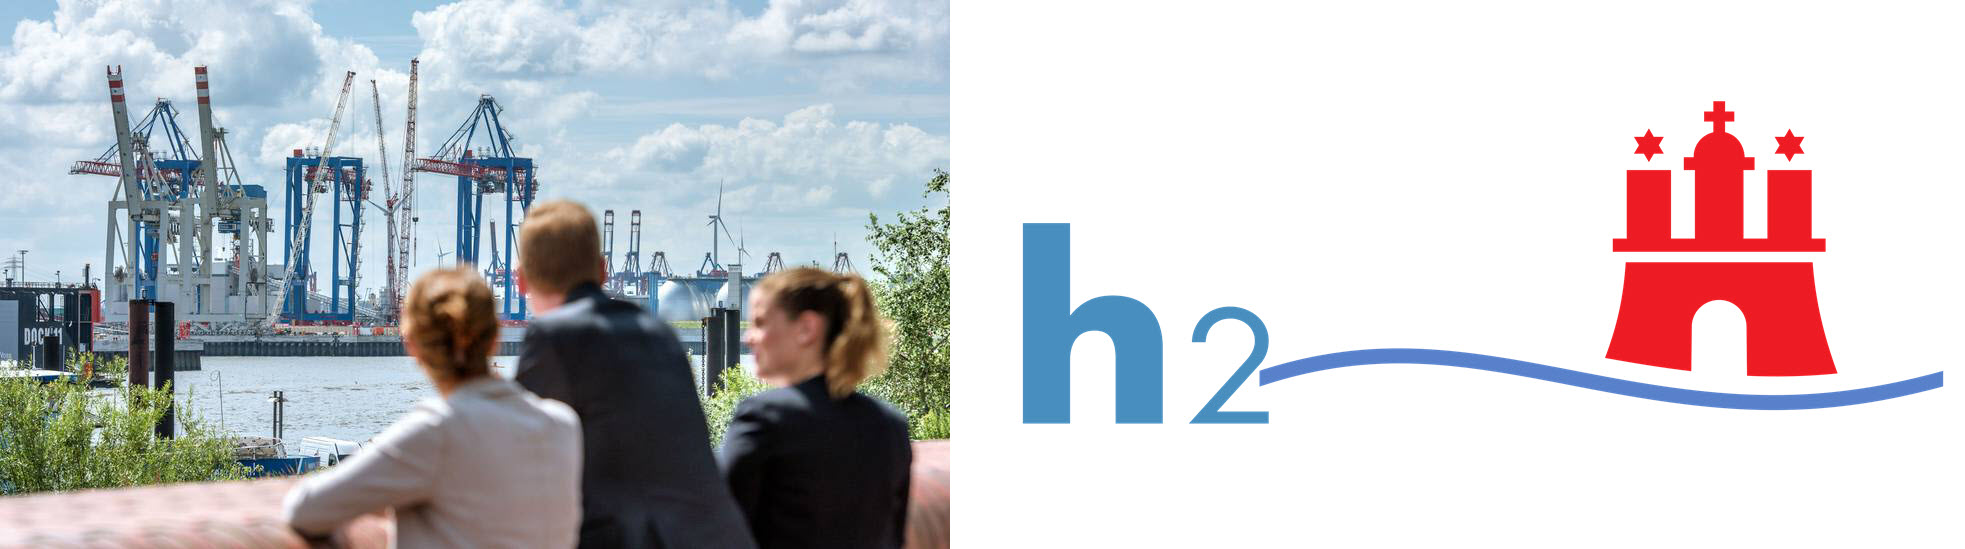 Hamburg Hydrogen Plant for Port